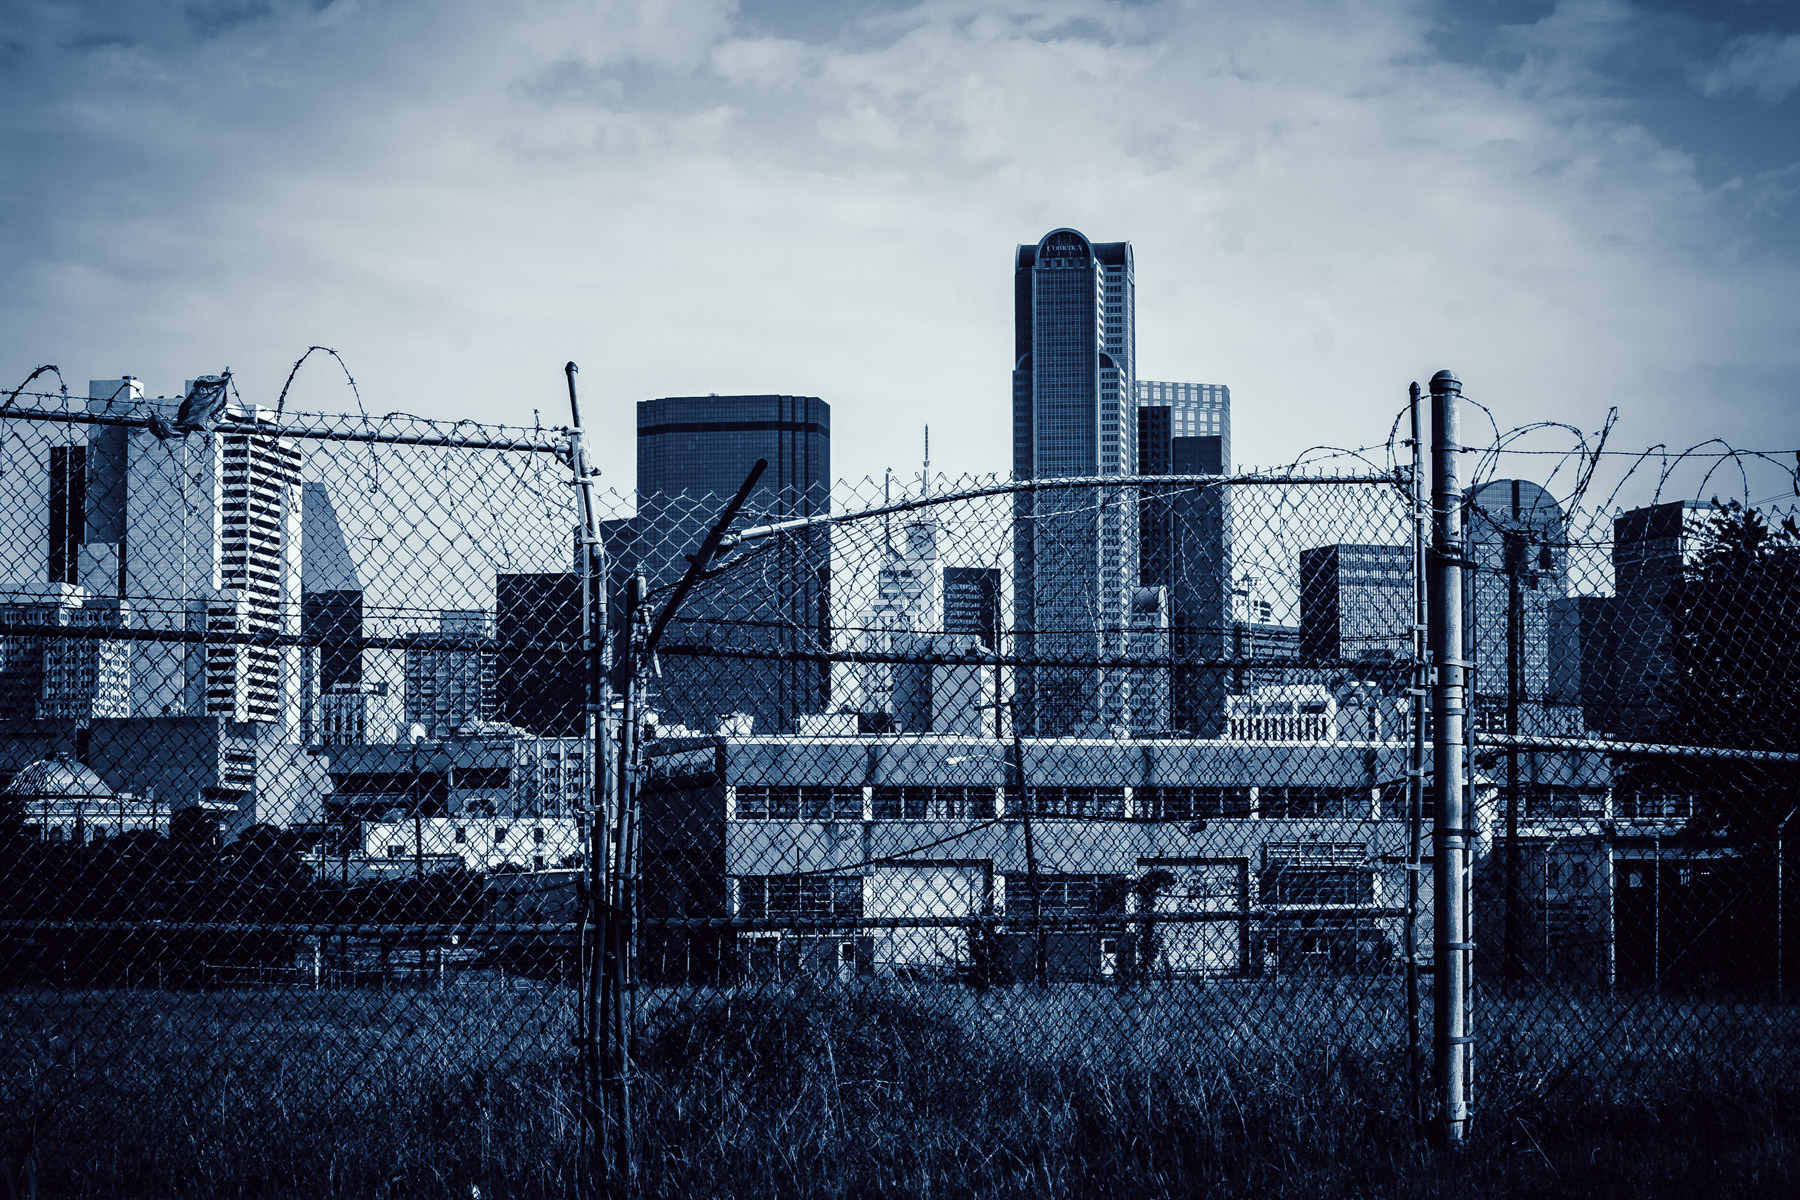 The Dallas Skyline as seen from an abandoned lot in The Cedars.